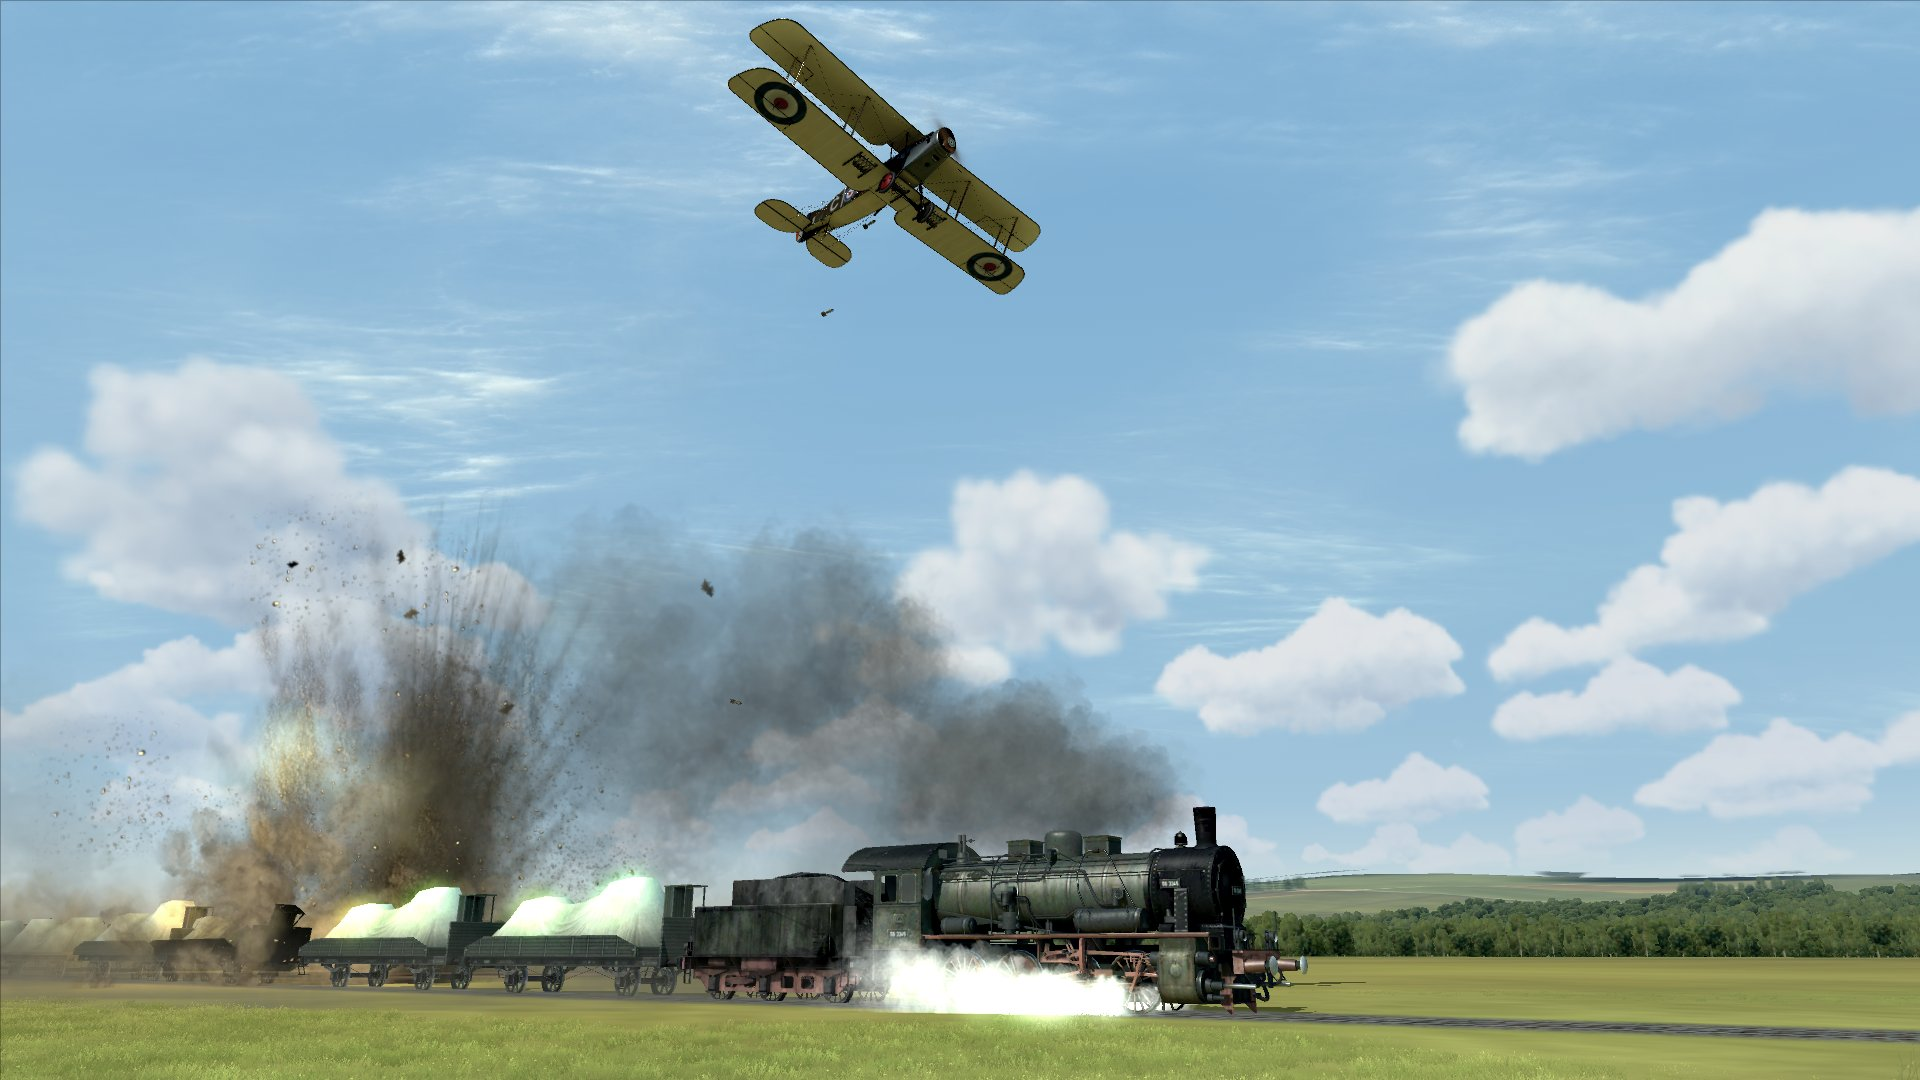 Rise Of Flight Free To Play Game About The World War I